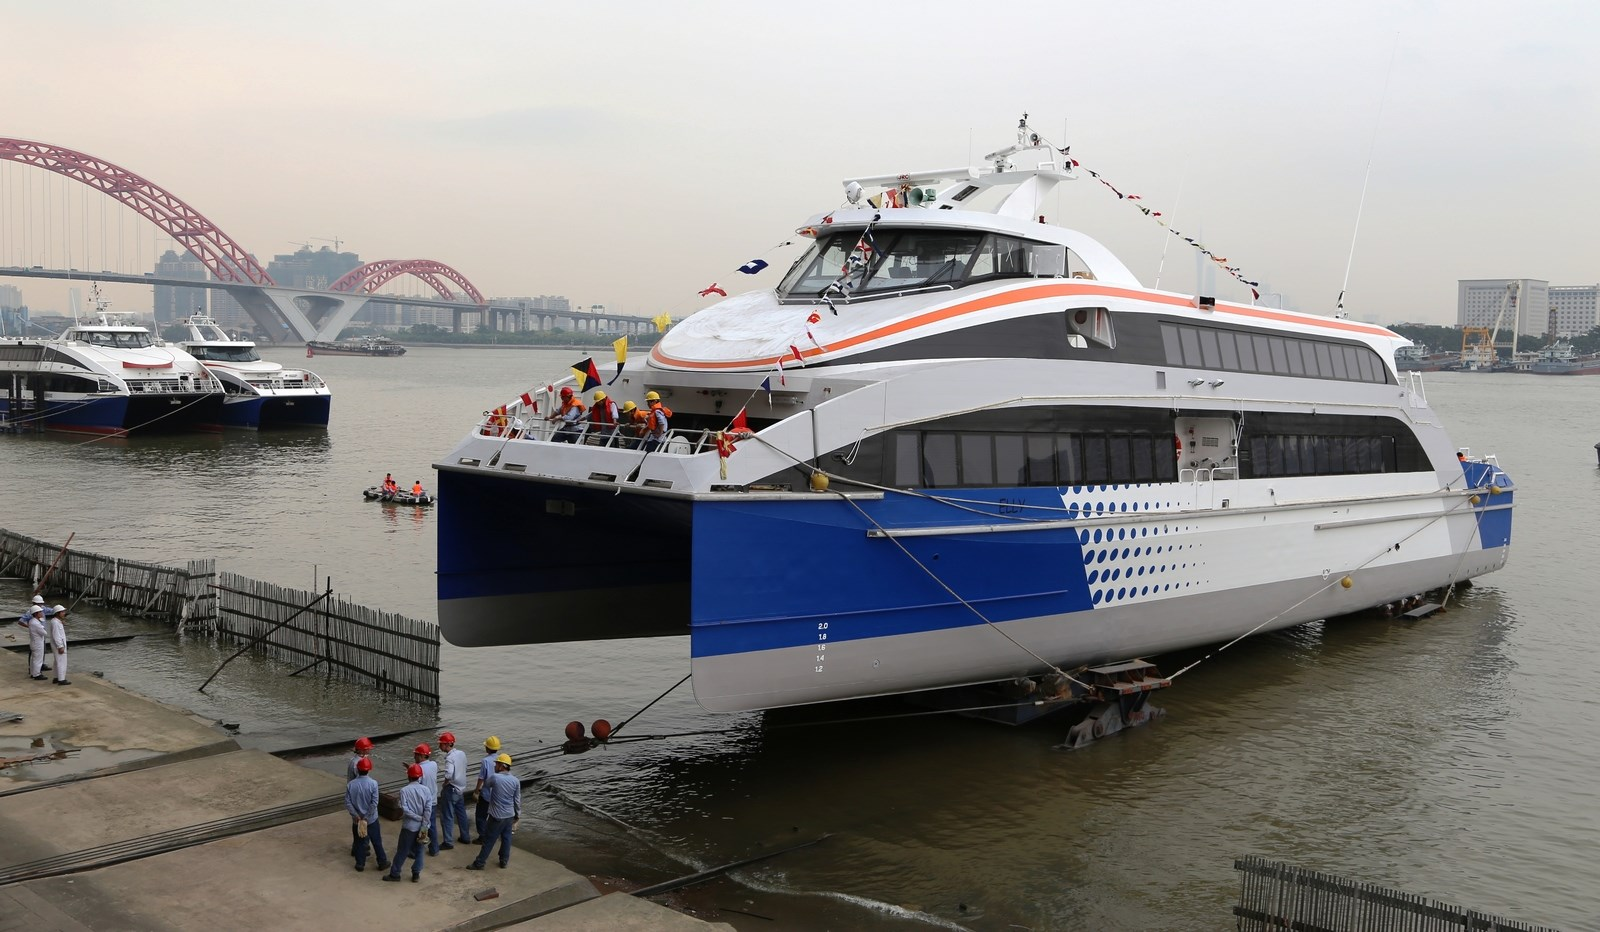 south korea drone with Damen Fast Ferry 4010 on Induction besides 32nd infantry armed with an m16a1 with m203 and moreover Video Moorings Connected For Prelude Flng likewise 514E681C 6456 4916 B77B 5A9018D37D7E in addition Drone Camera Used Monitor Garbage Disposal Bagmati River.